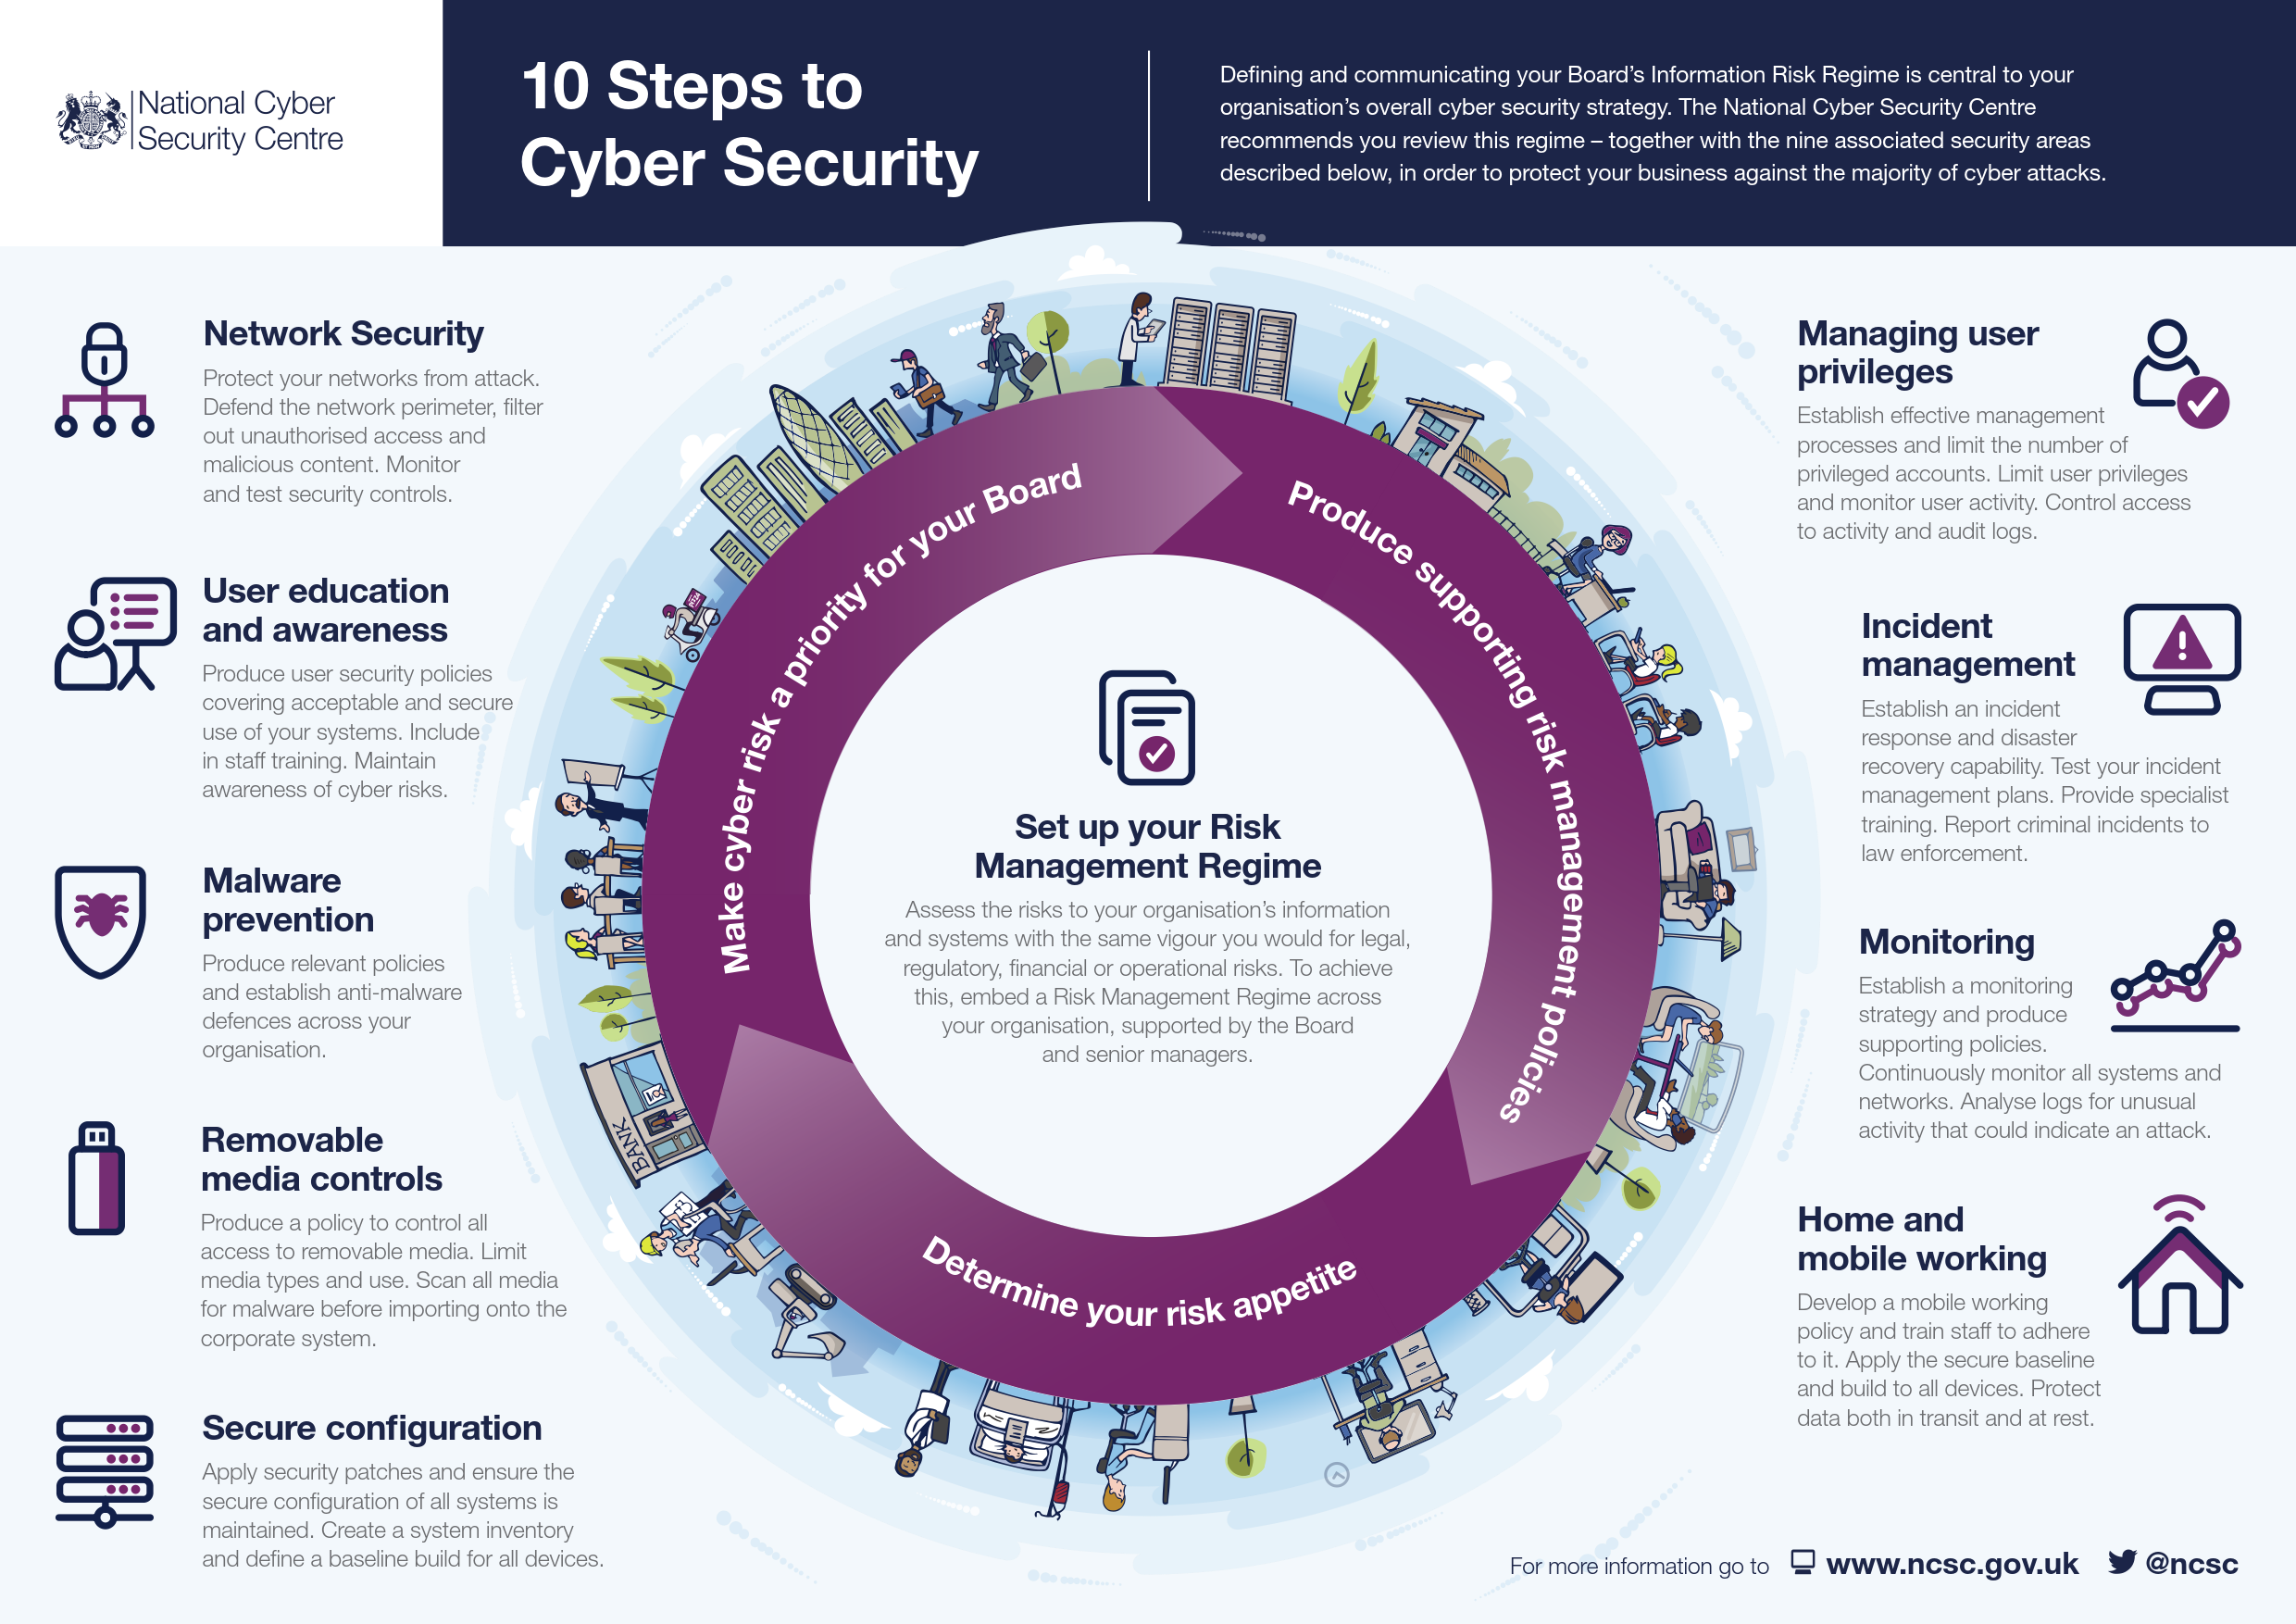 NCSC_10_Steps_To_Cyber_Security.png